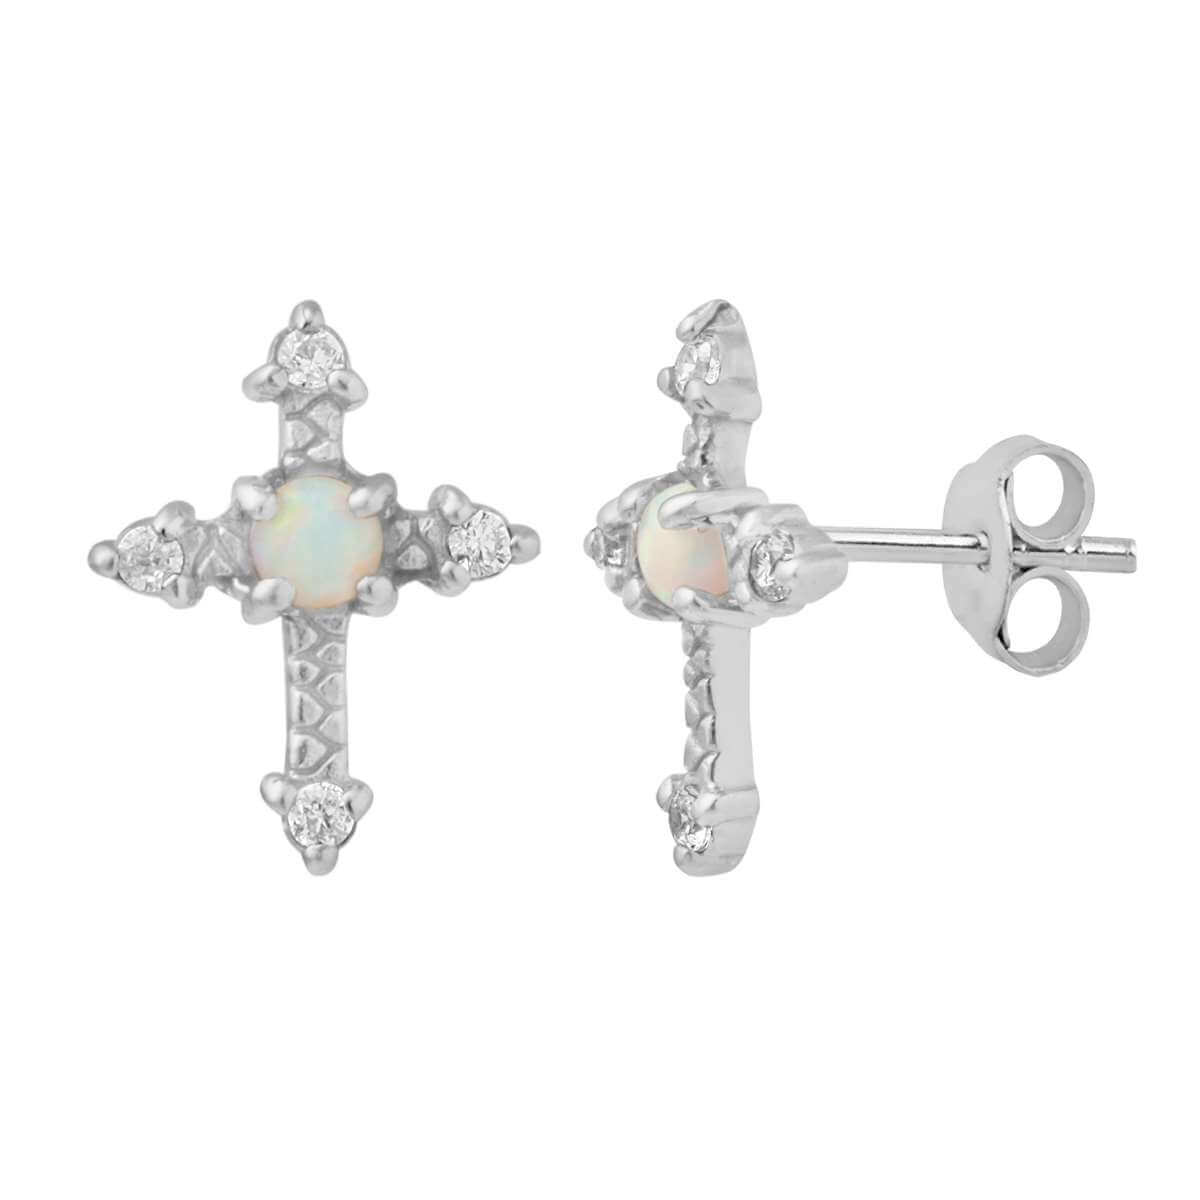 Sterling Silver Cross CZ Faux Opal Stud Earrings